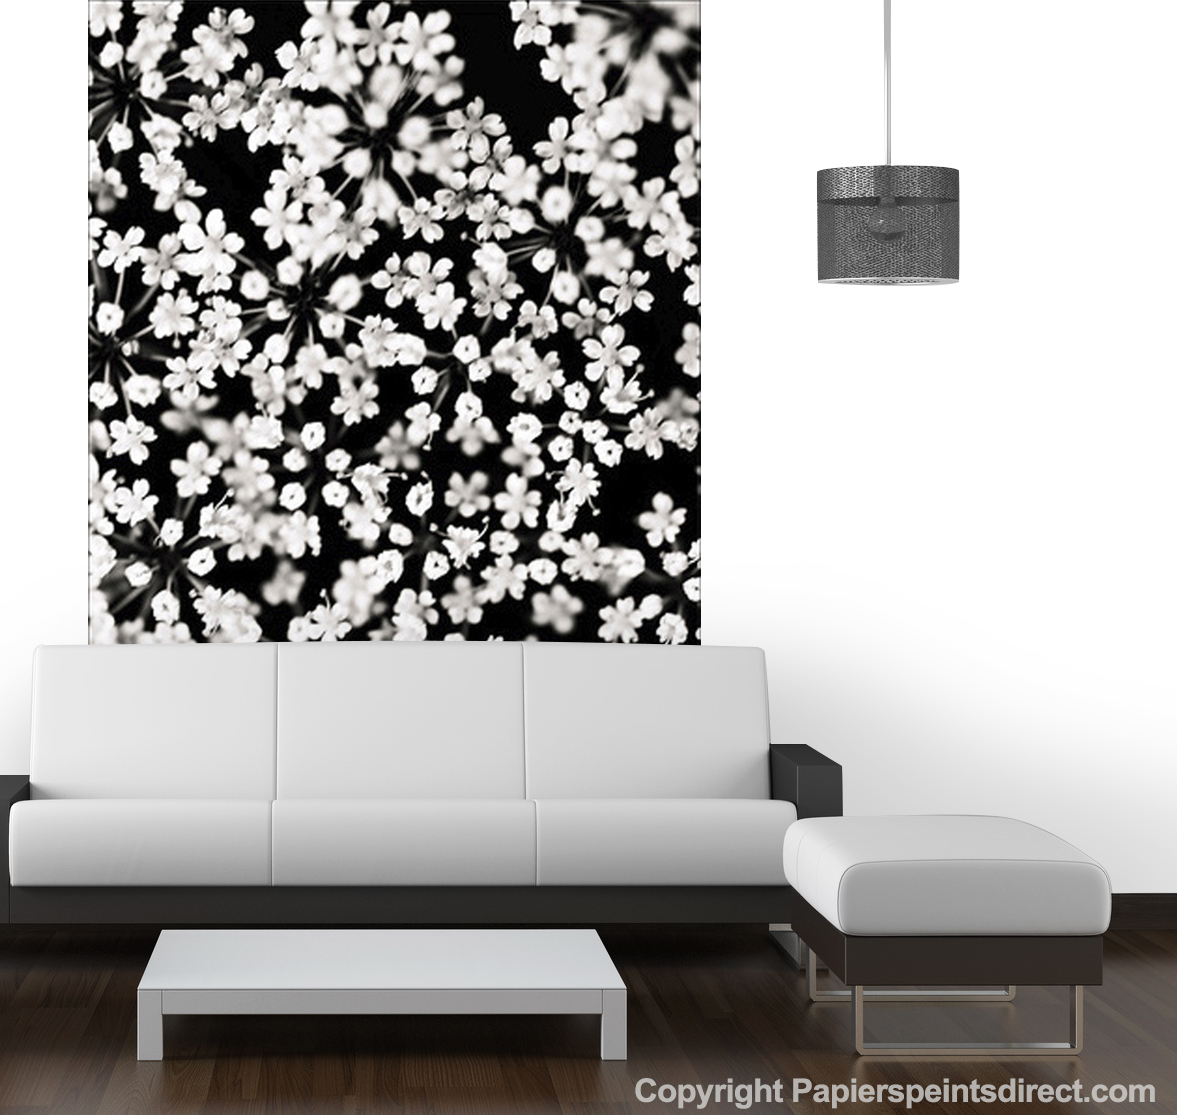 d coration murale murs d 39 image d coration murale le blog papiers. Black Bedroom Furniture Sets. Home Design Ideas